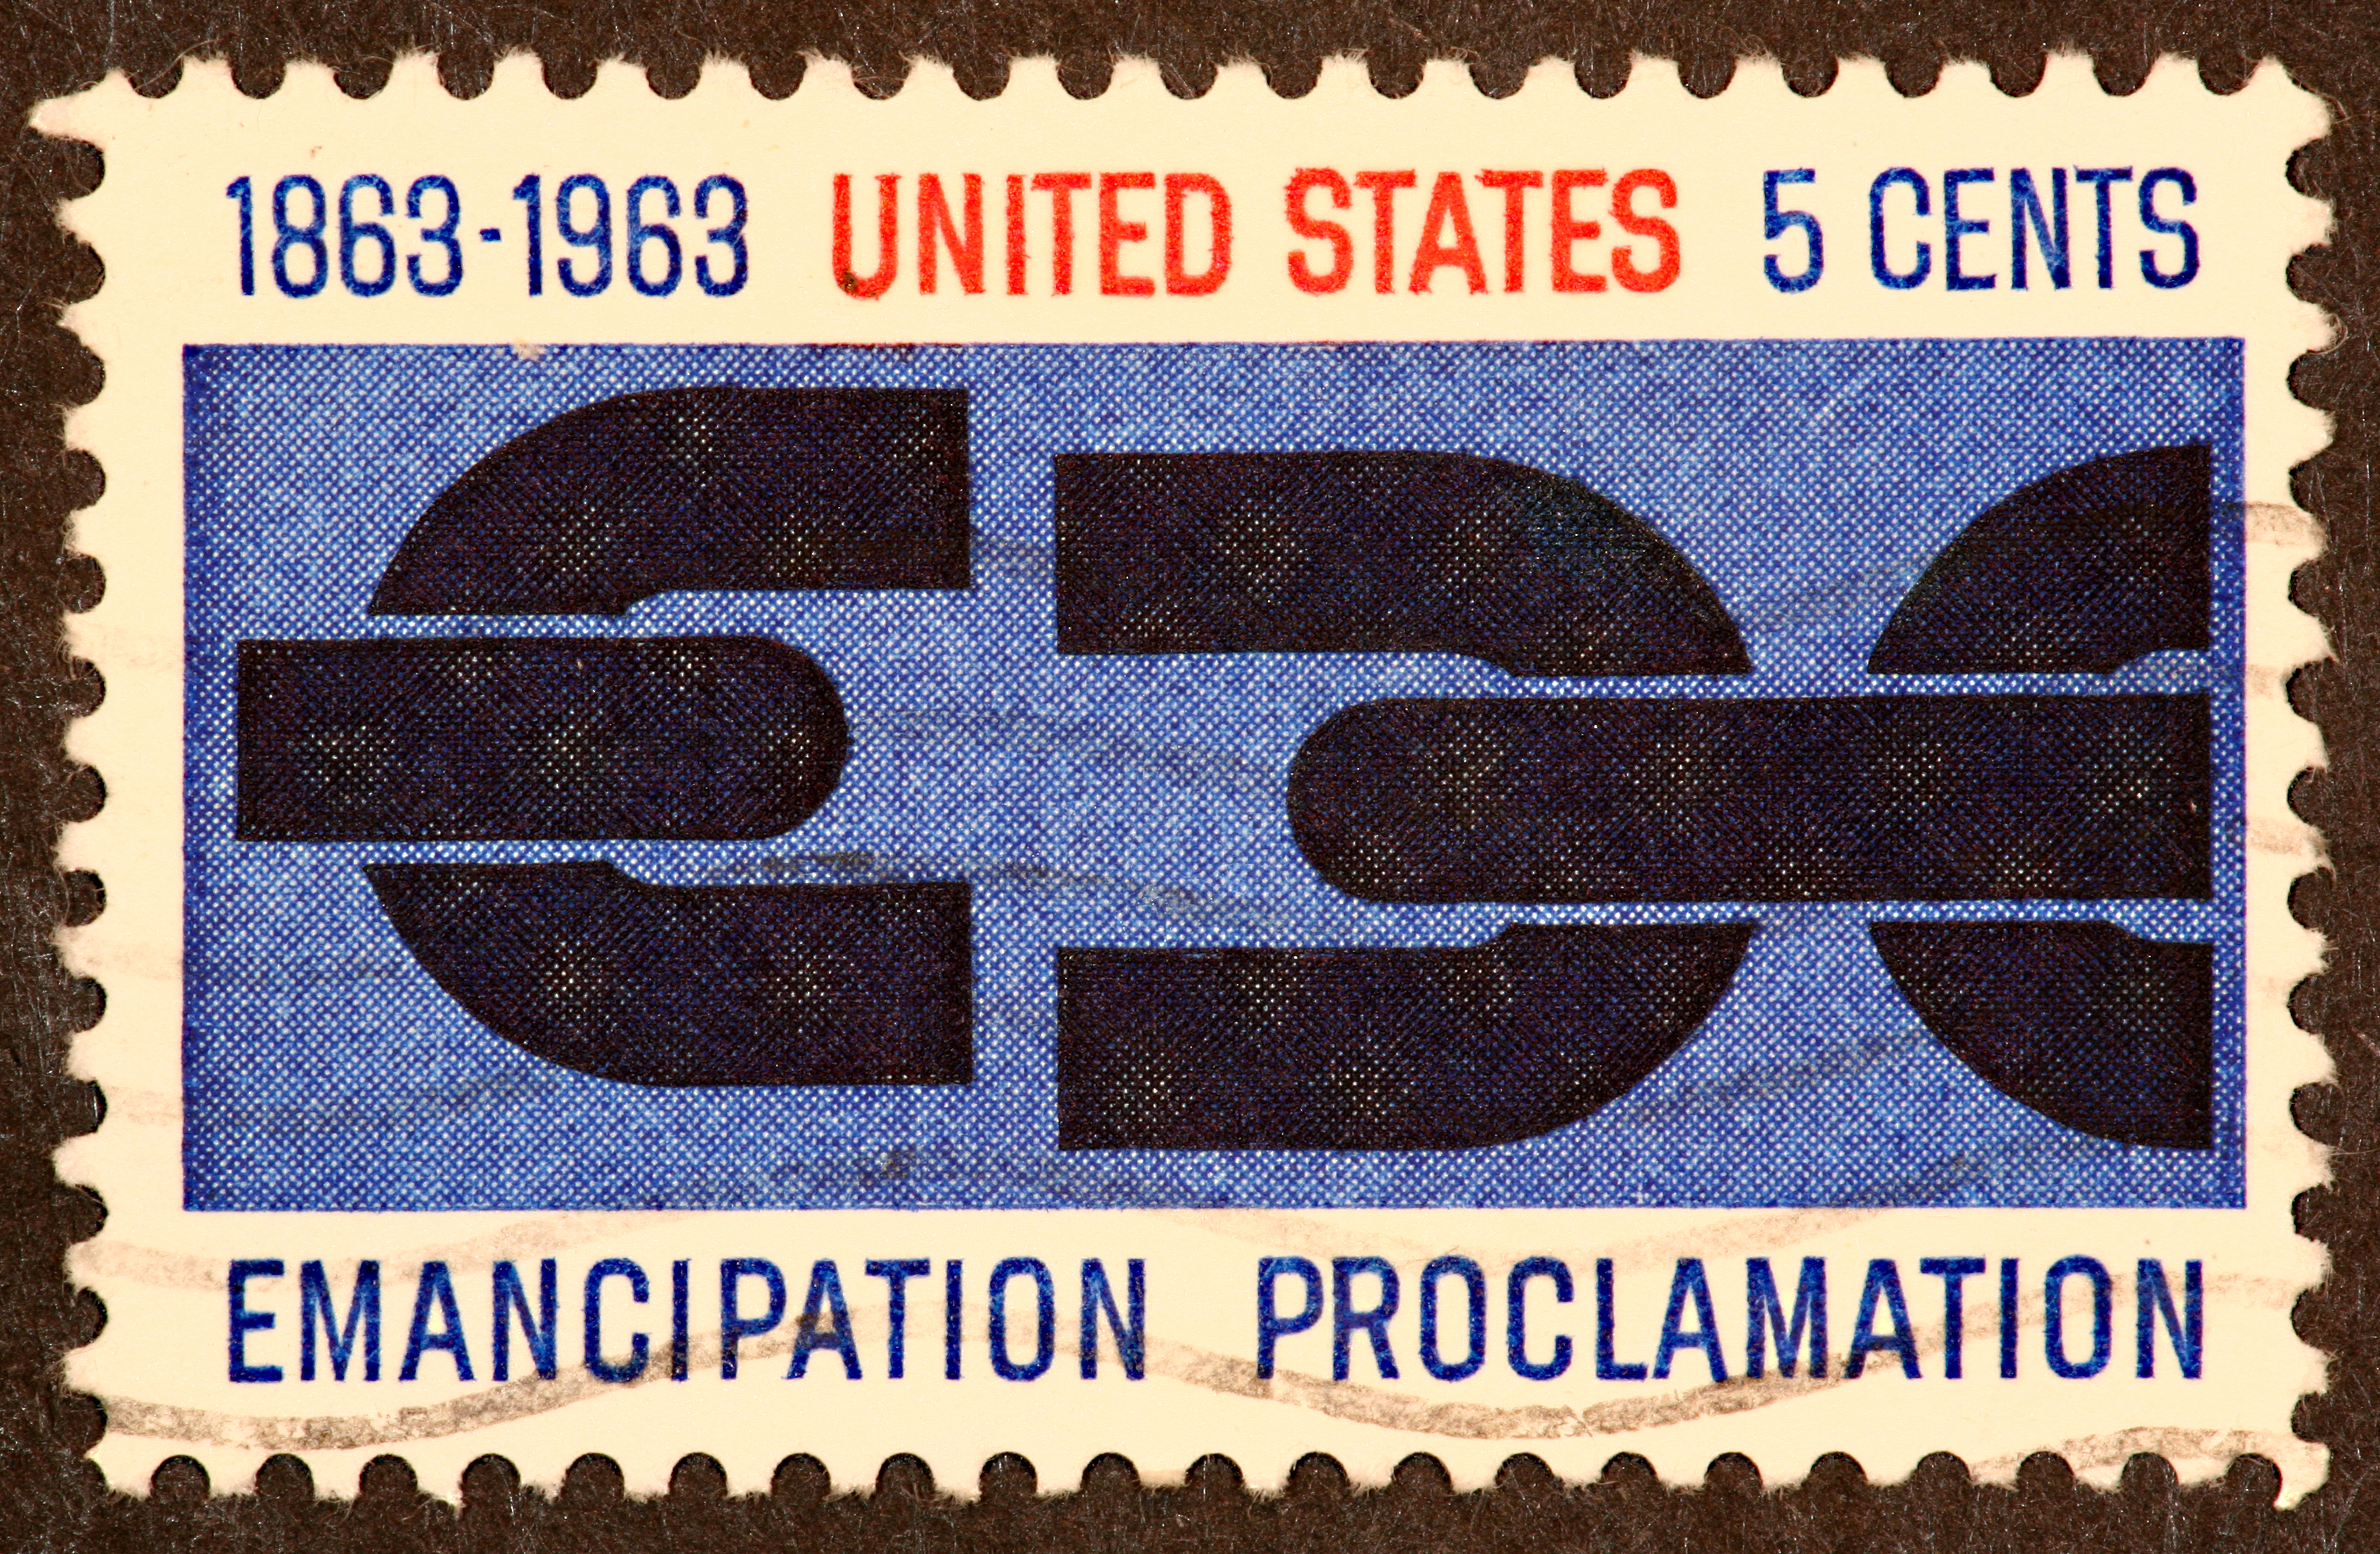 1963 postage stamp commemorating the Emanicaption Proclamation.1863